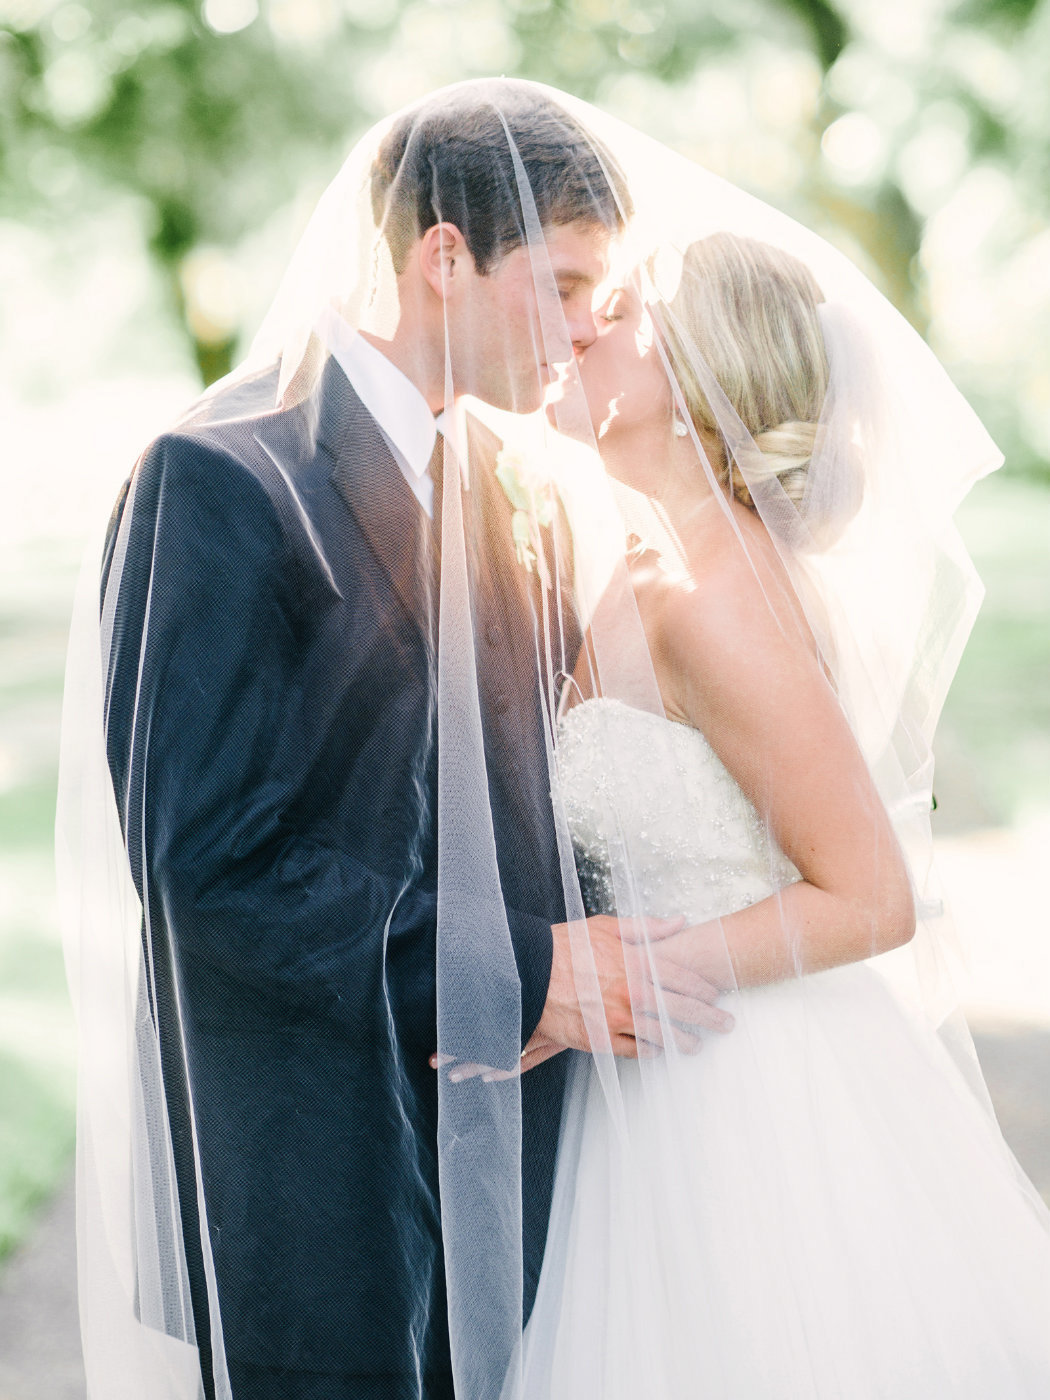 Brookgreen Gardens Wedding Photography | Wedding Pictures Ideas | Plantation Wedding Venue | Garden Weddings | Spanish Moss Wedding Venues in South Carolina | Charleston Wedding Photographers | Myrtle Beach Wedding Photography